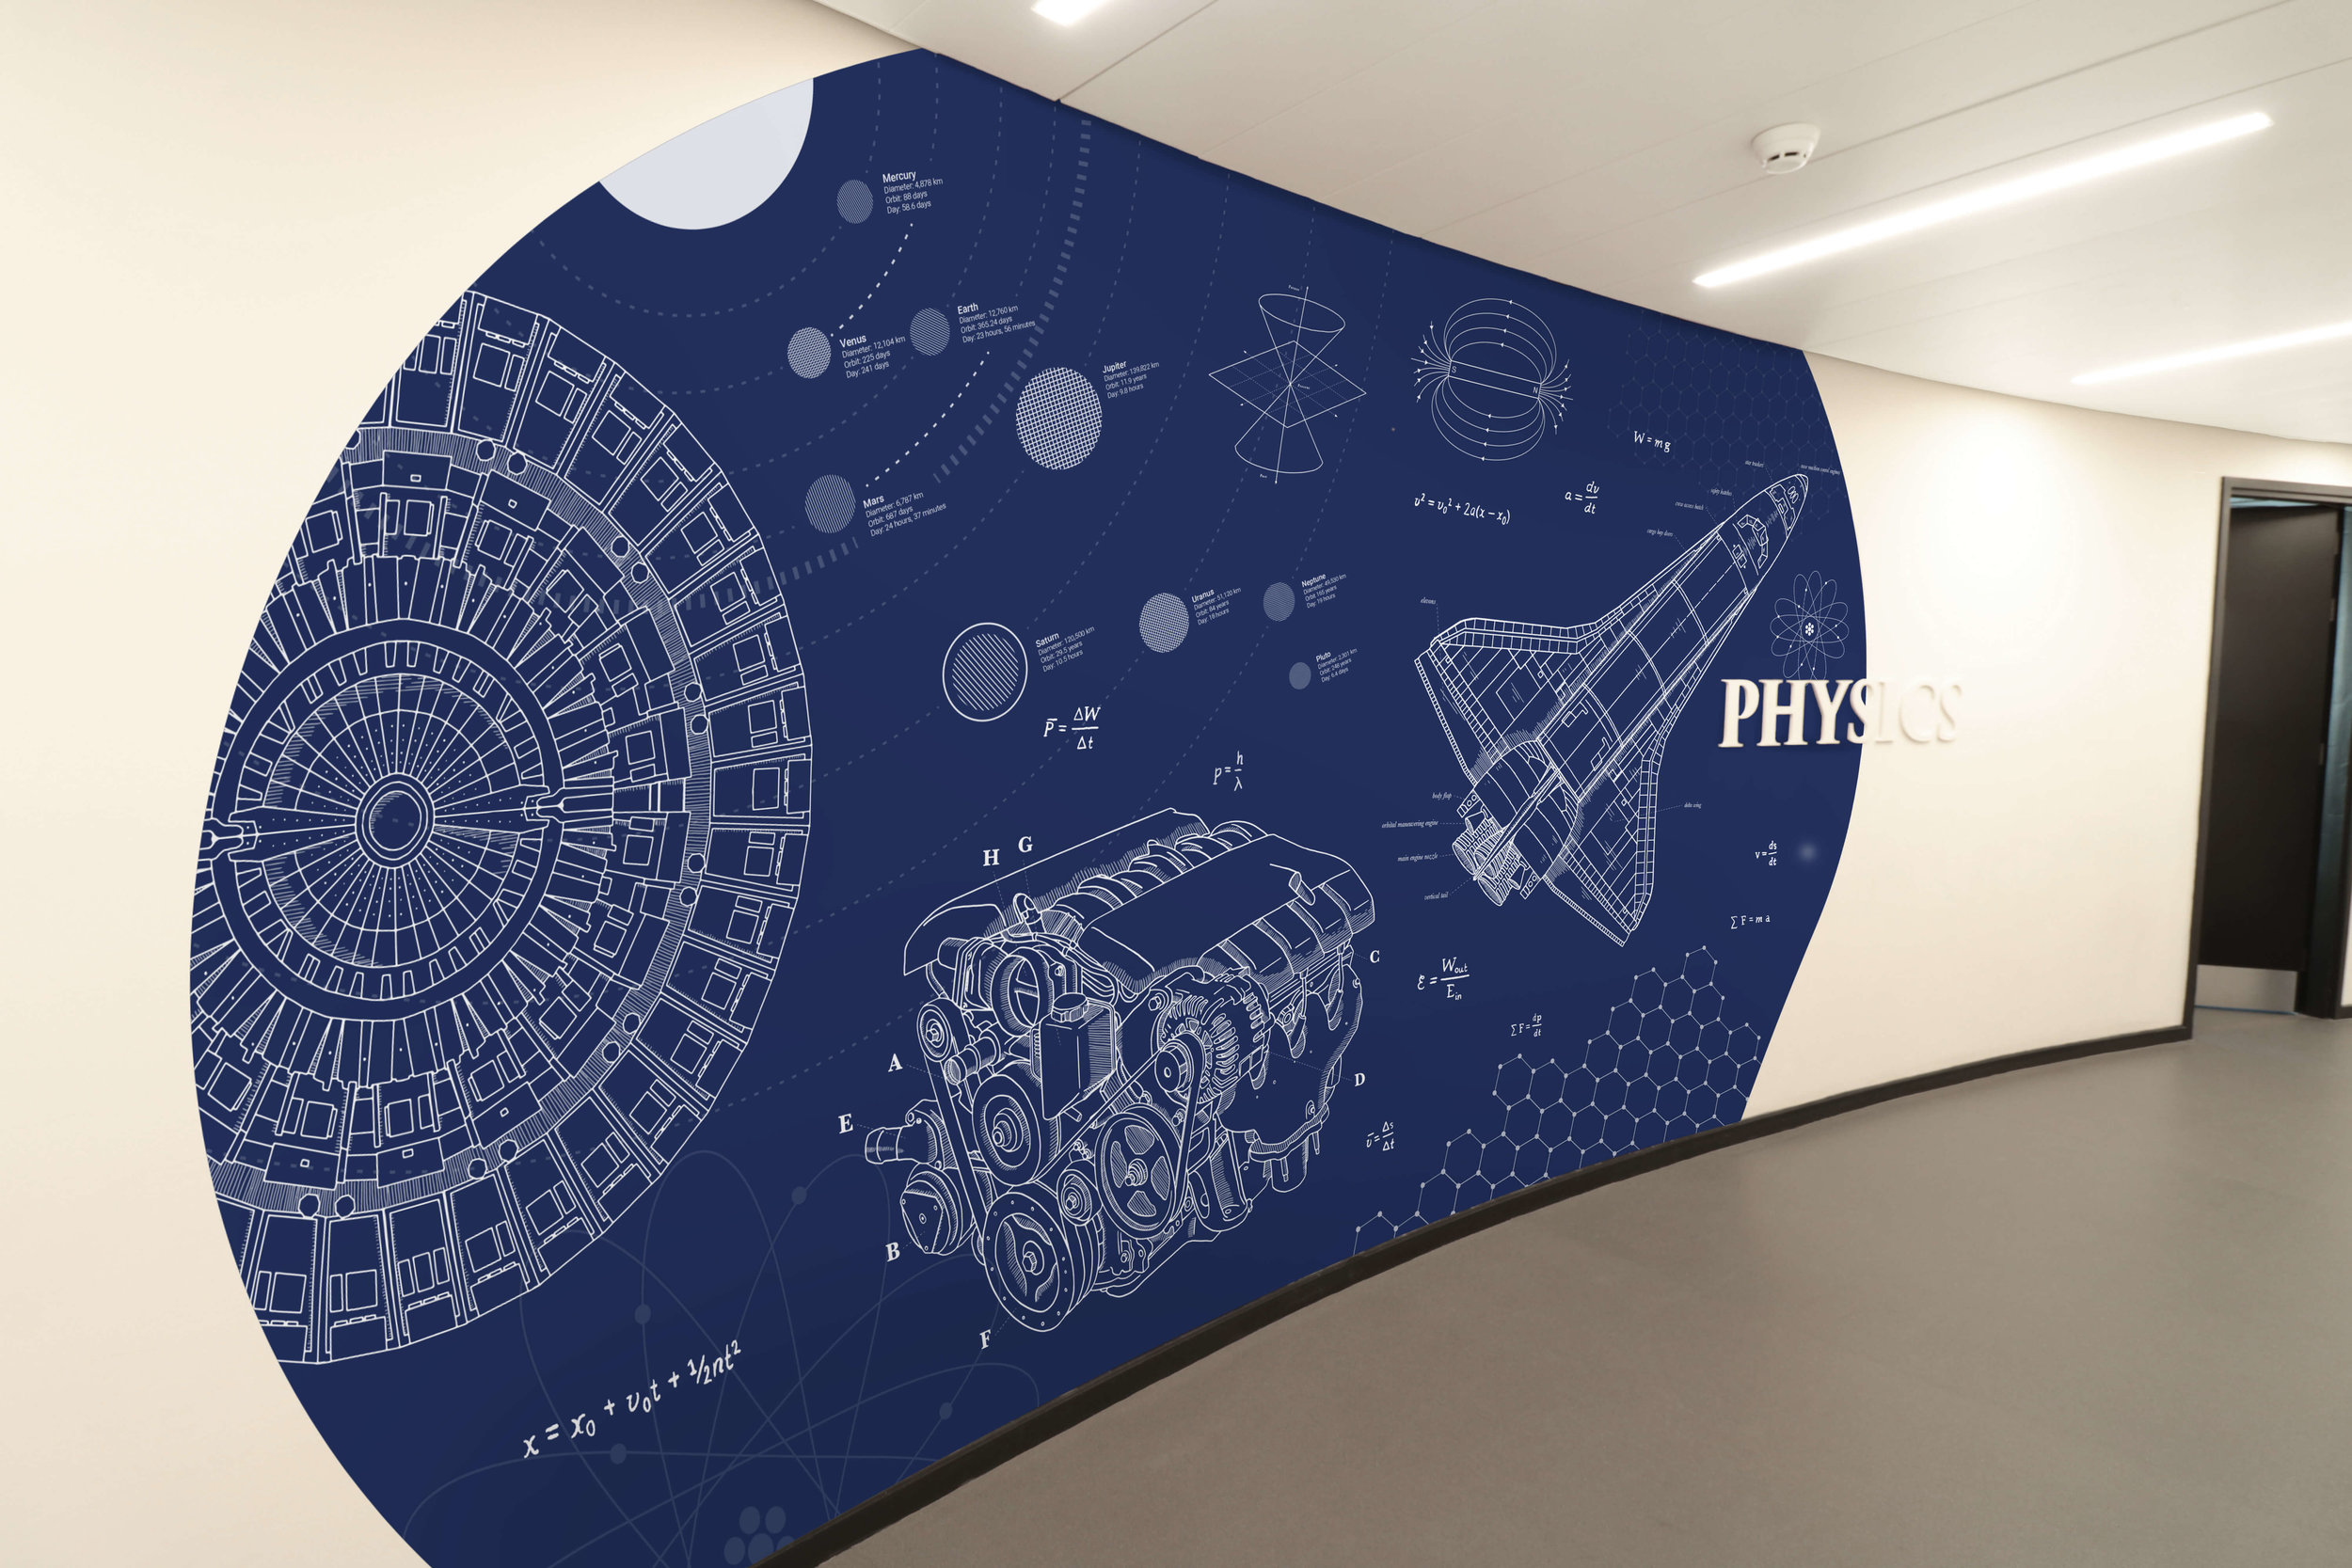 DLD College science wall graphic display